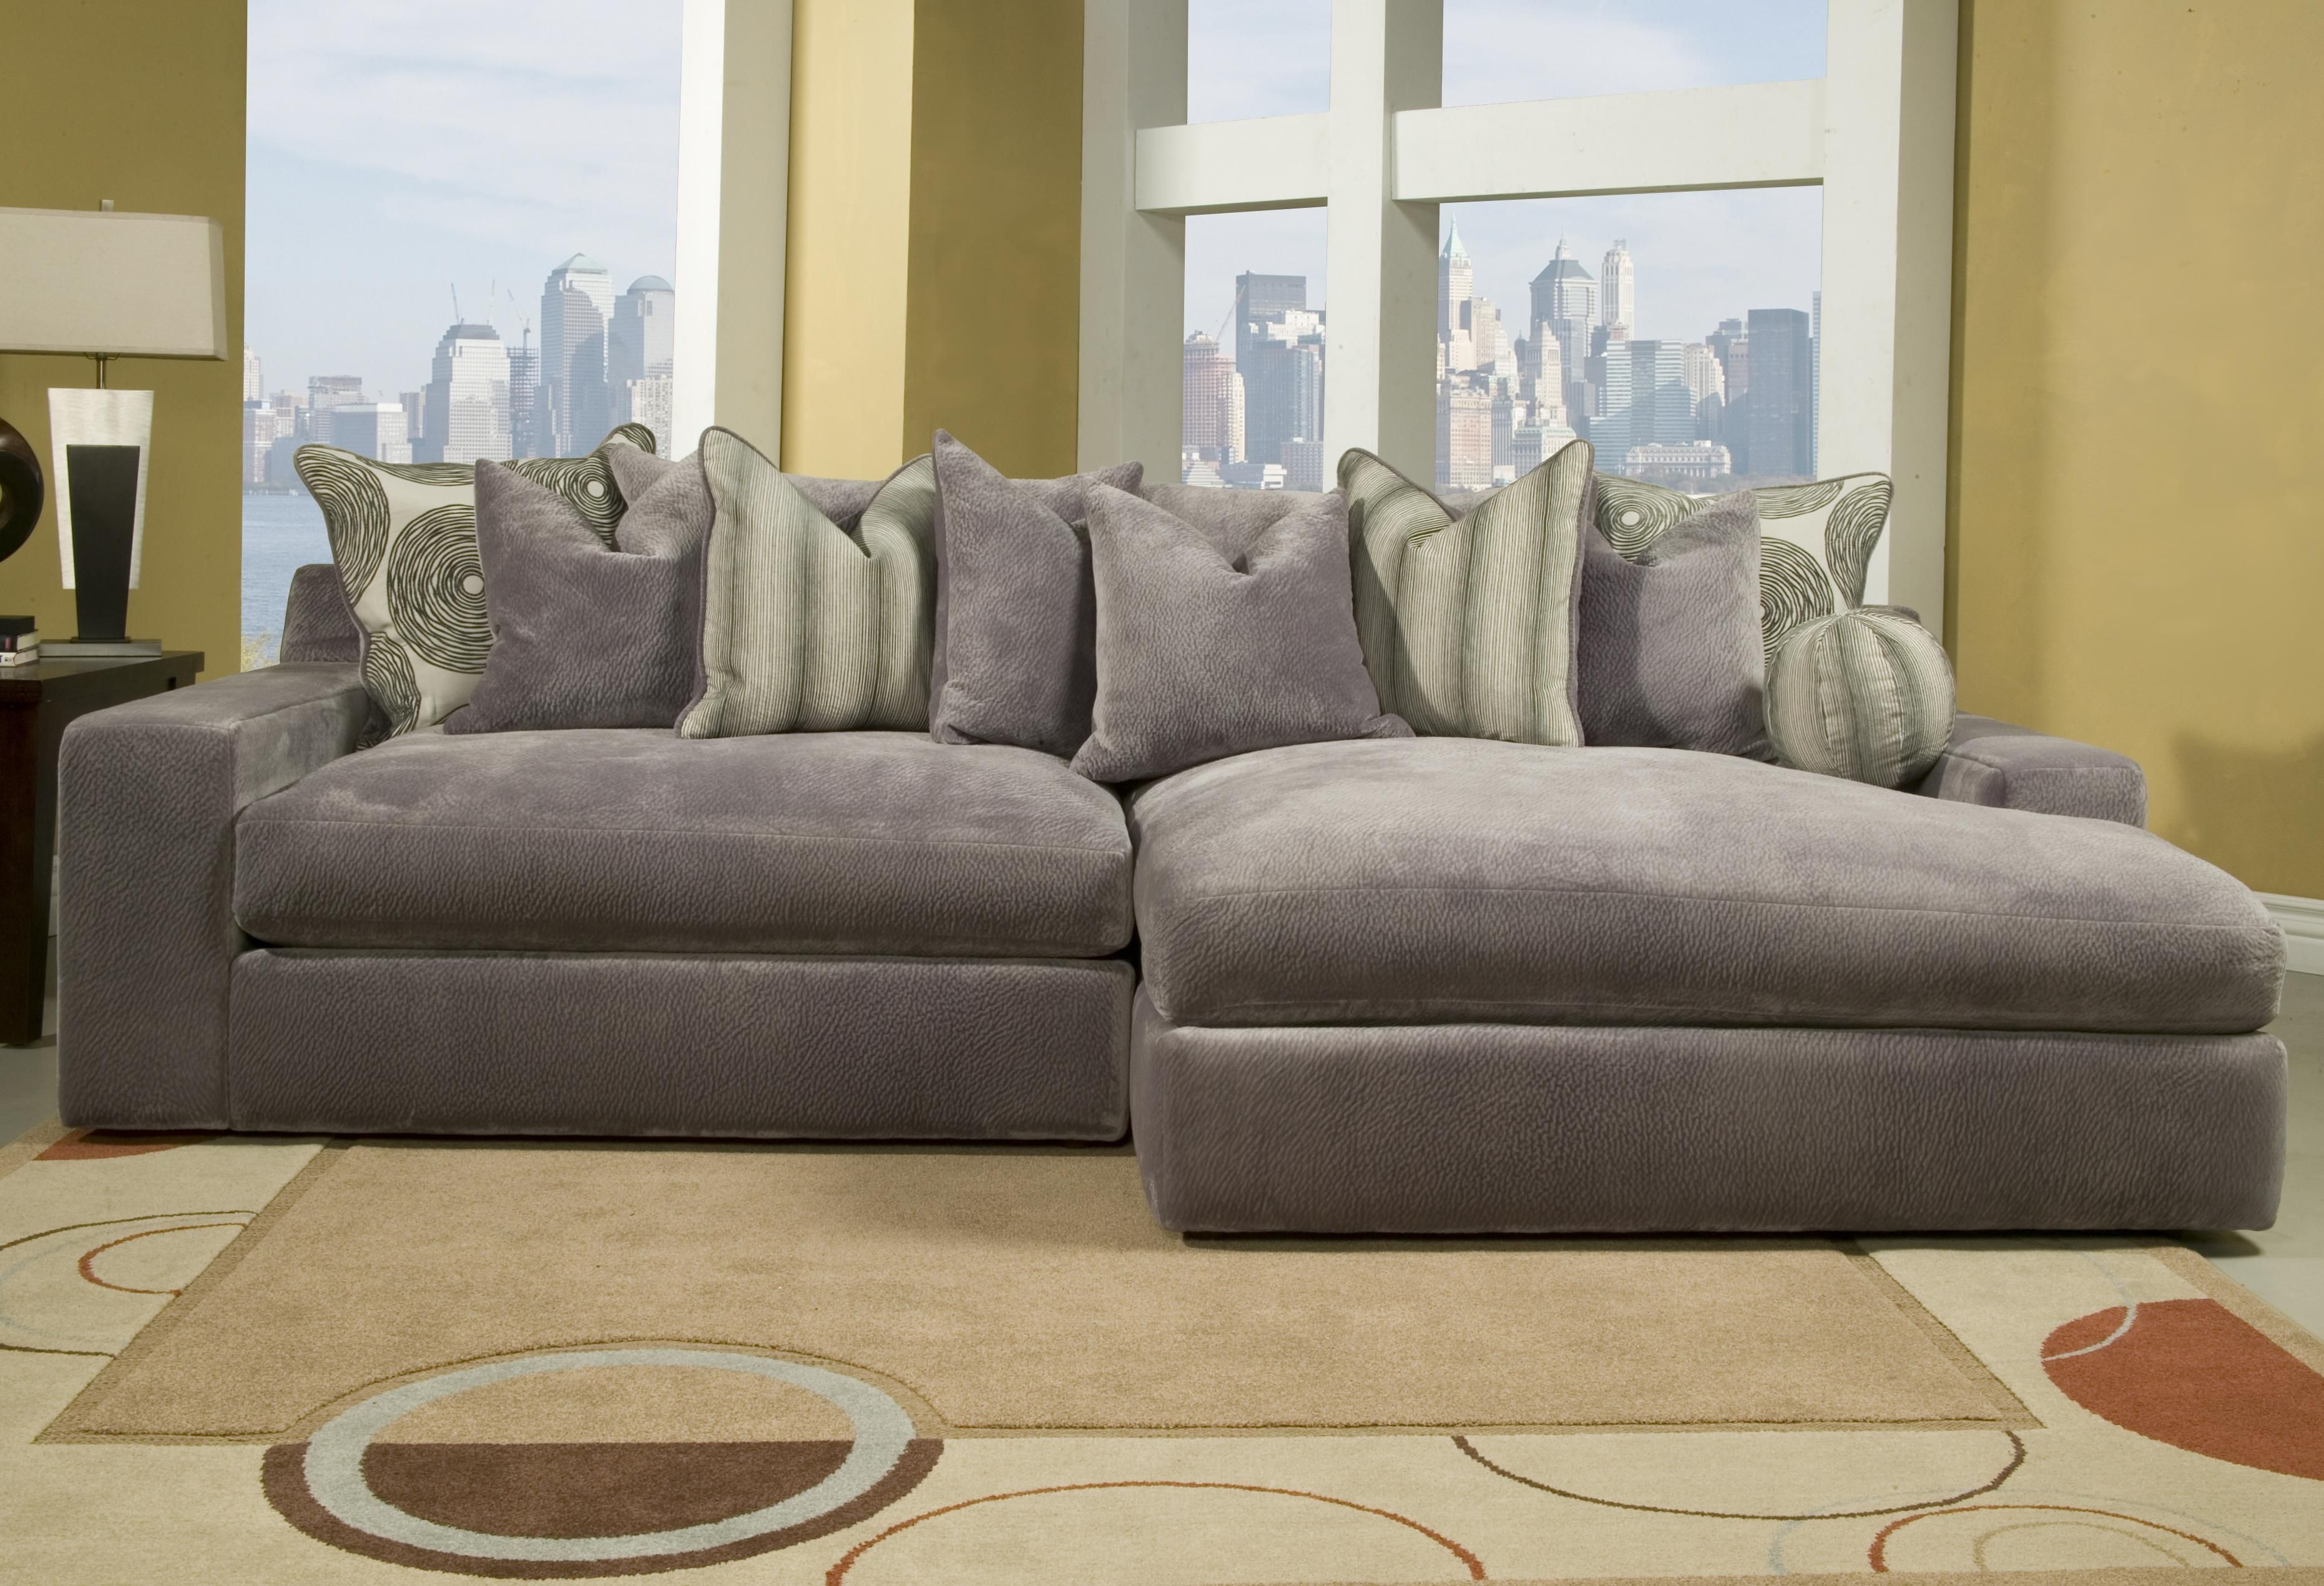 Oasis Contemporary Sectional By Robert Michael Fashion Furniture Sofa Sectional Fresno Madera Clov Modern Sofa Sectional Modern Style Furniture Furniture